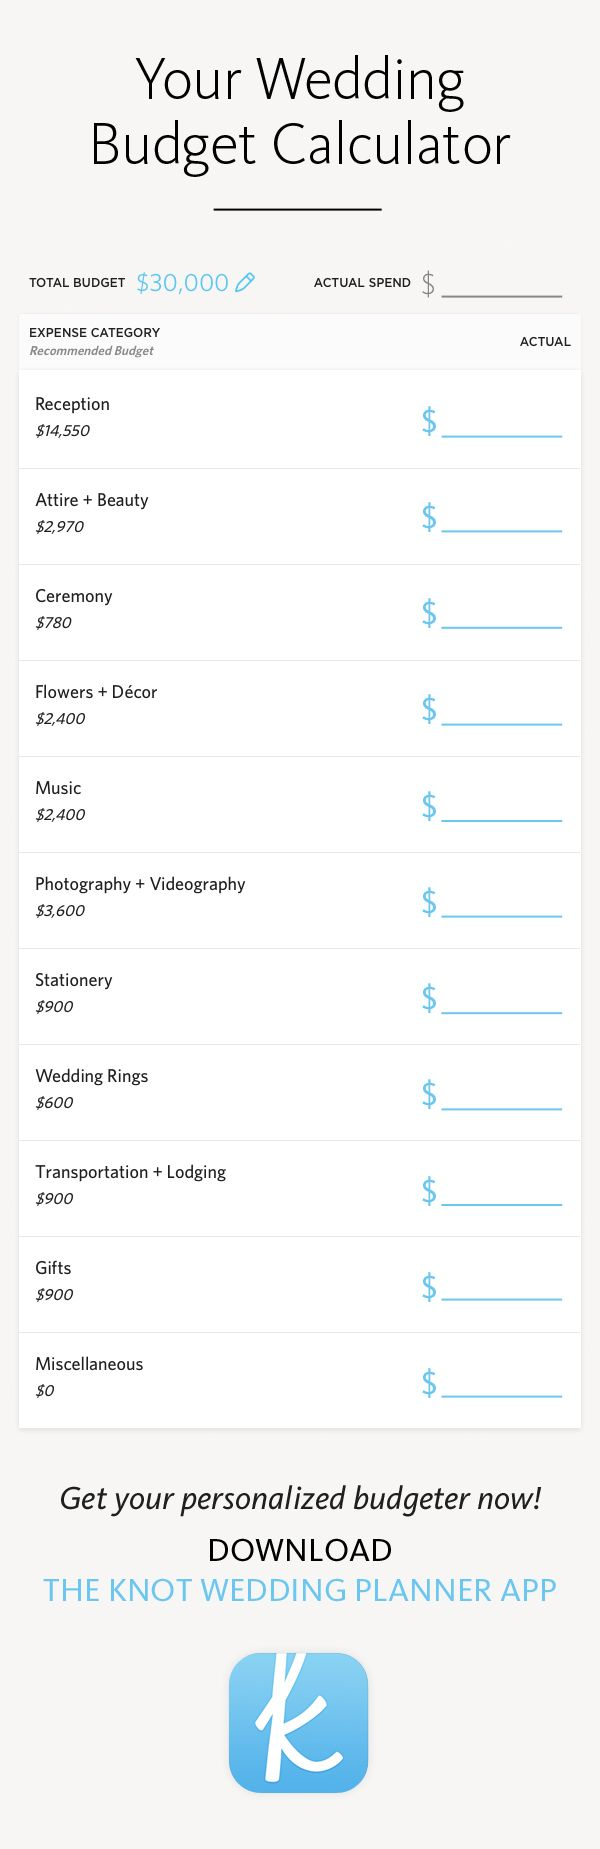 Your Wedding Budget Calculator In The KnotS Planner App  What